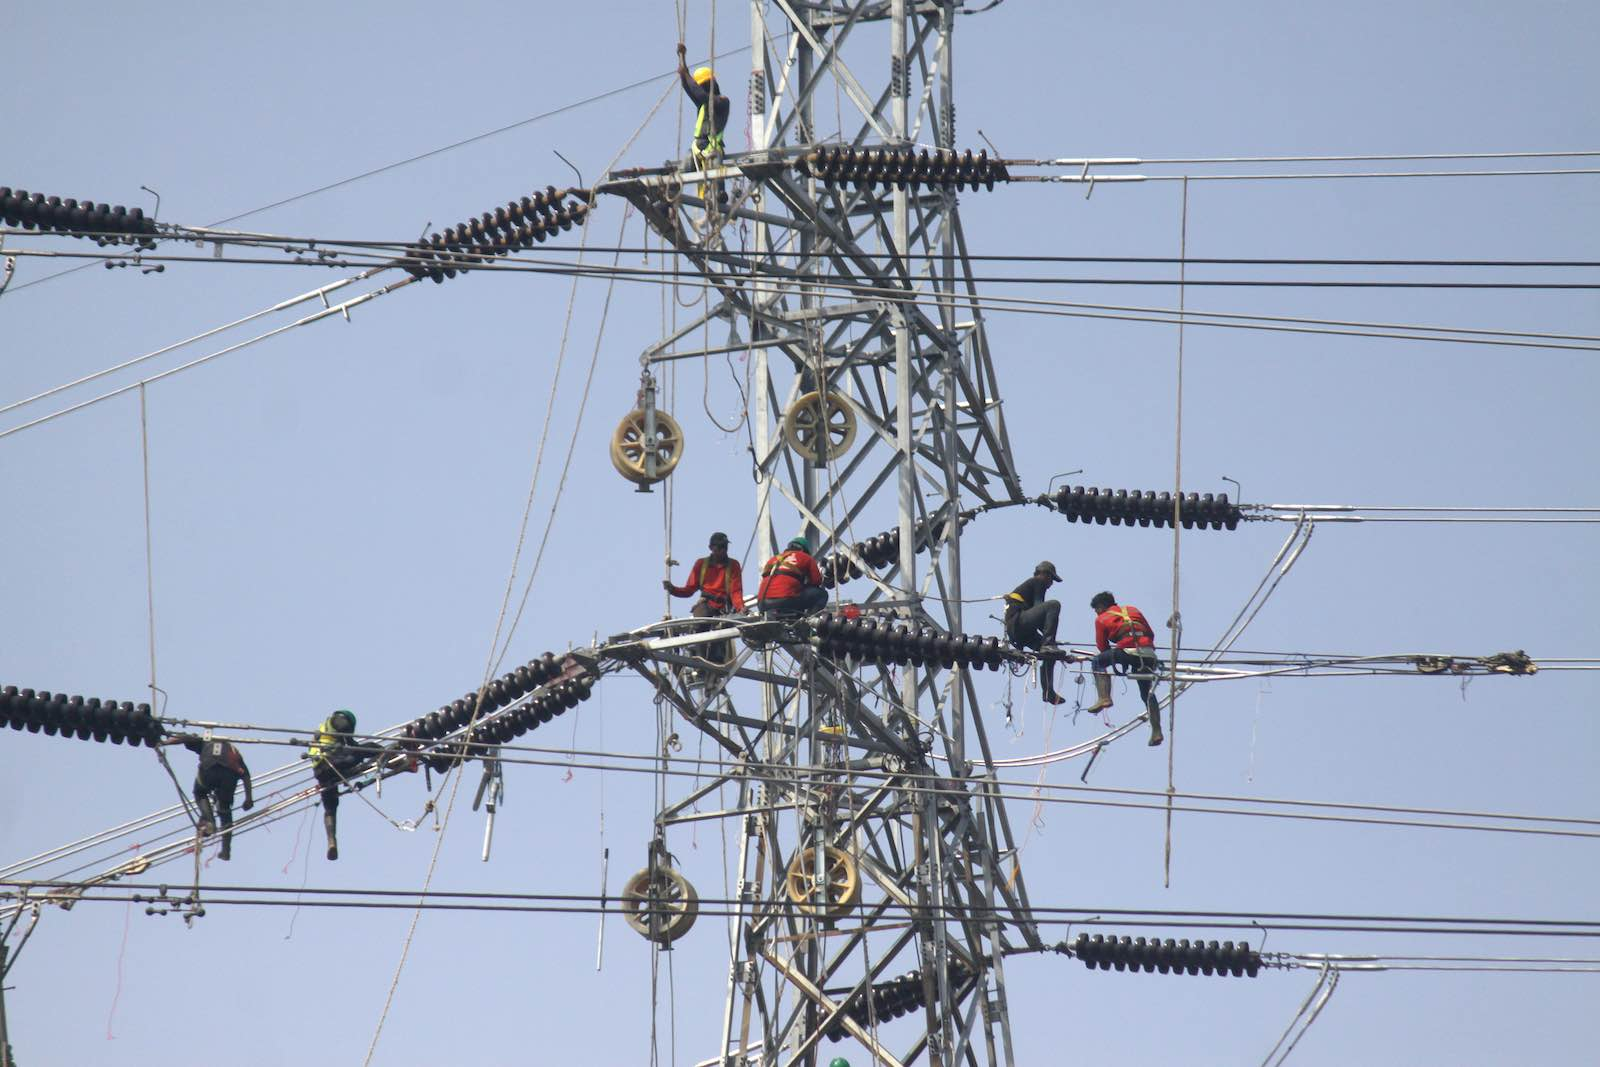 Workers installing high voltage lines for a 35,000 MW electricity project in Jakarta, December 2019 (Aditya Irawan/NurPhoto via Getty Images)